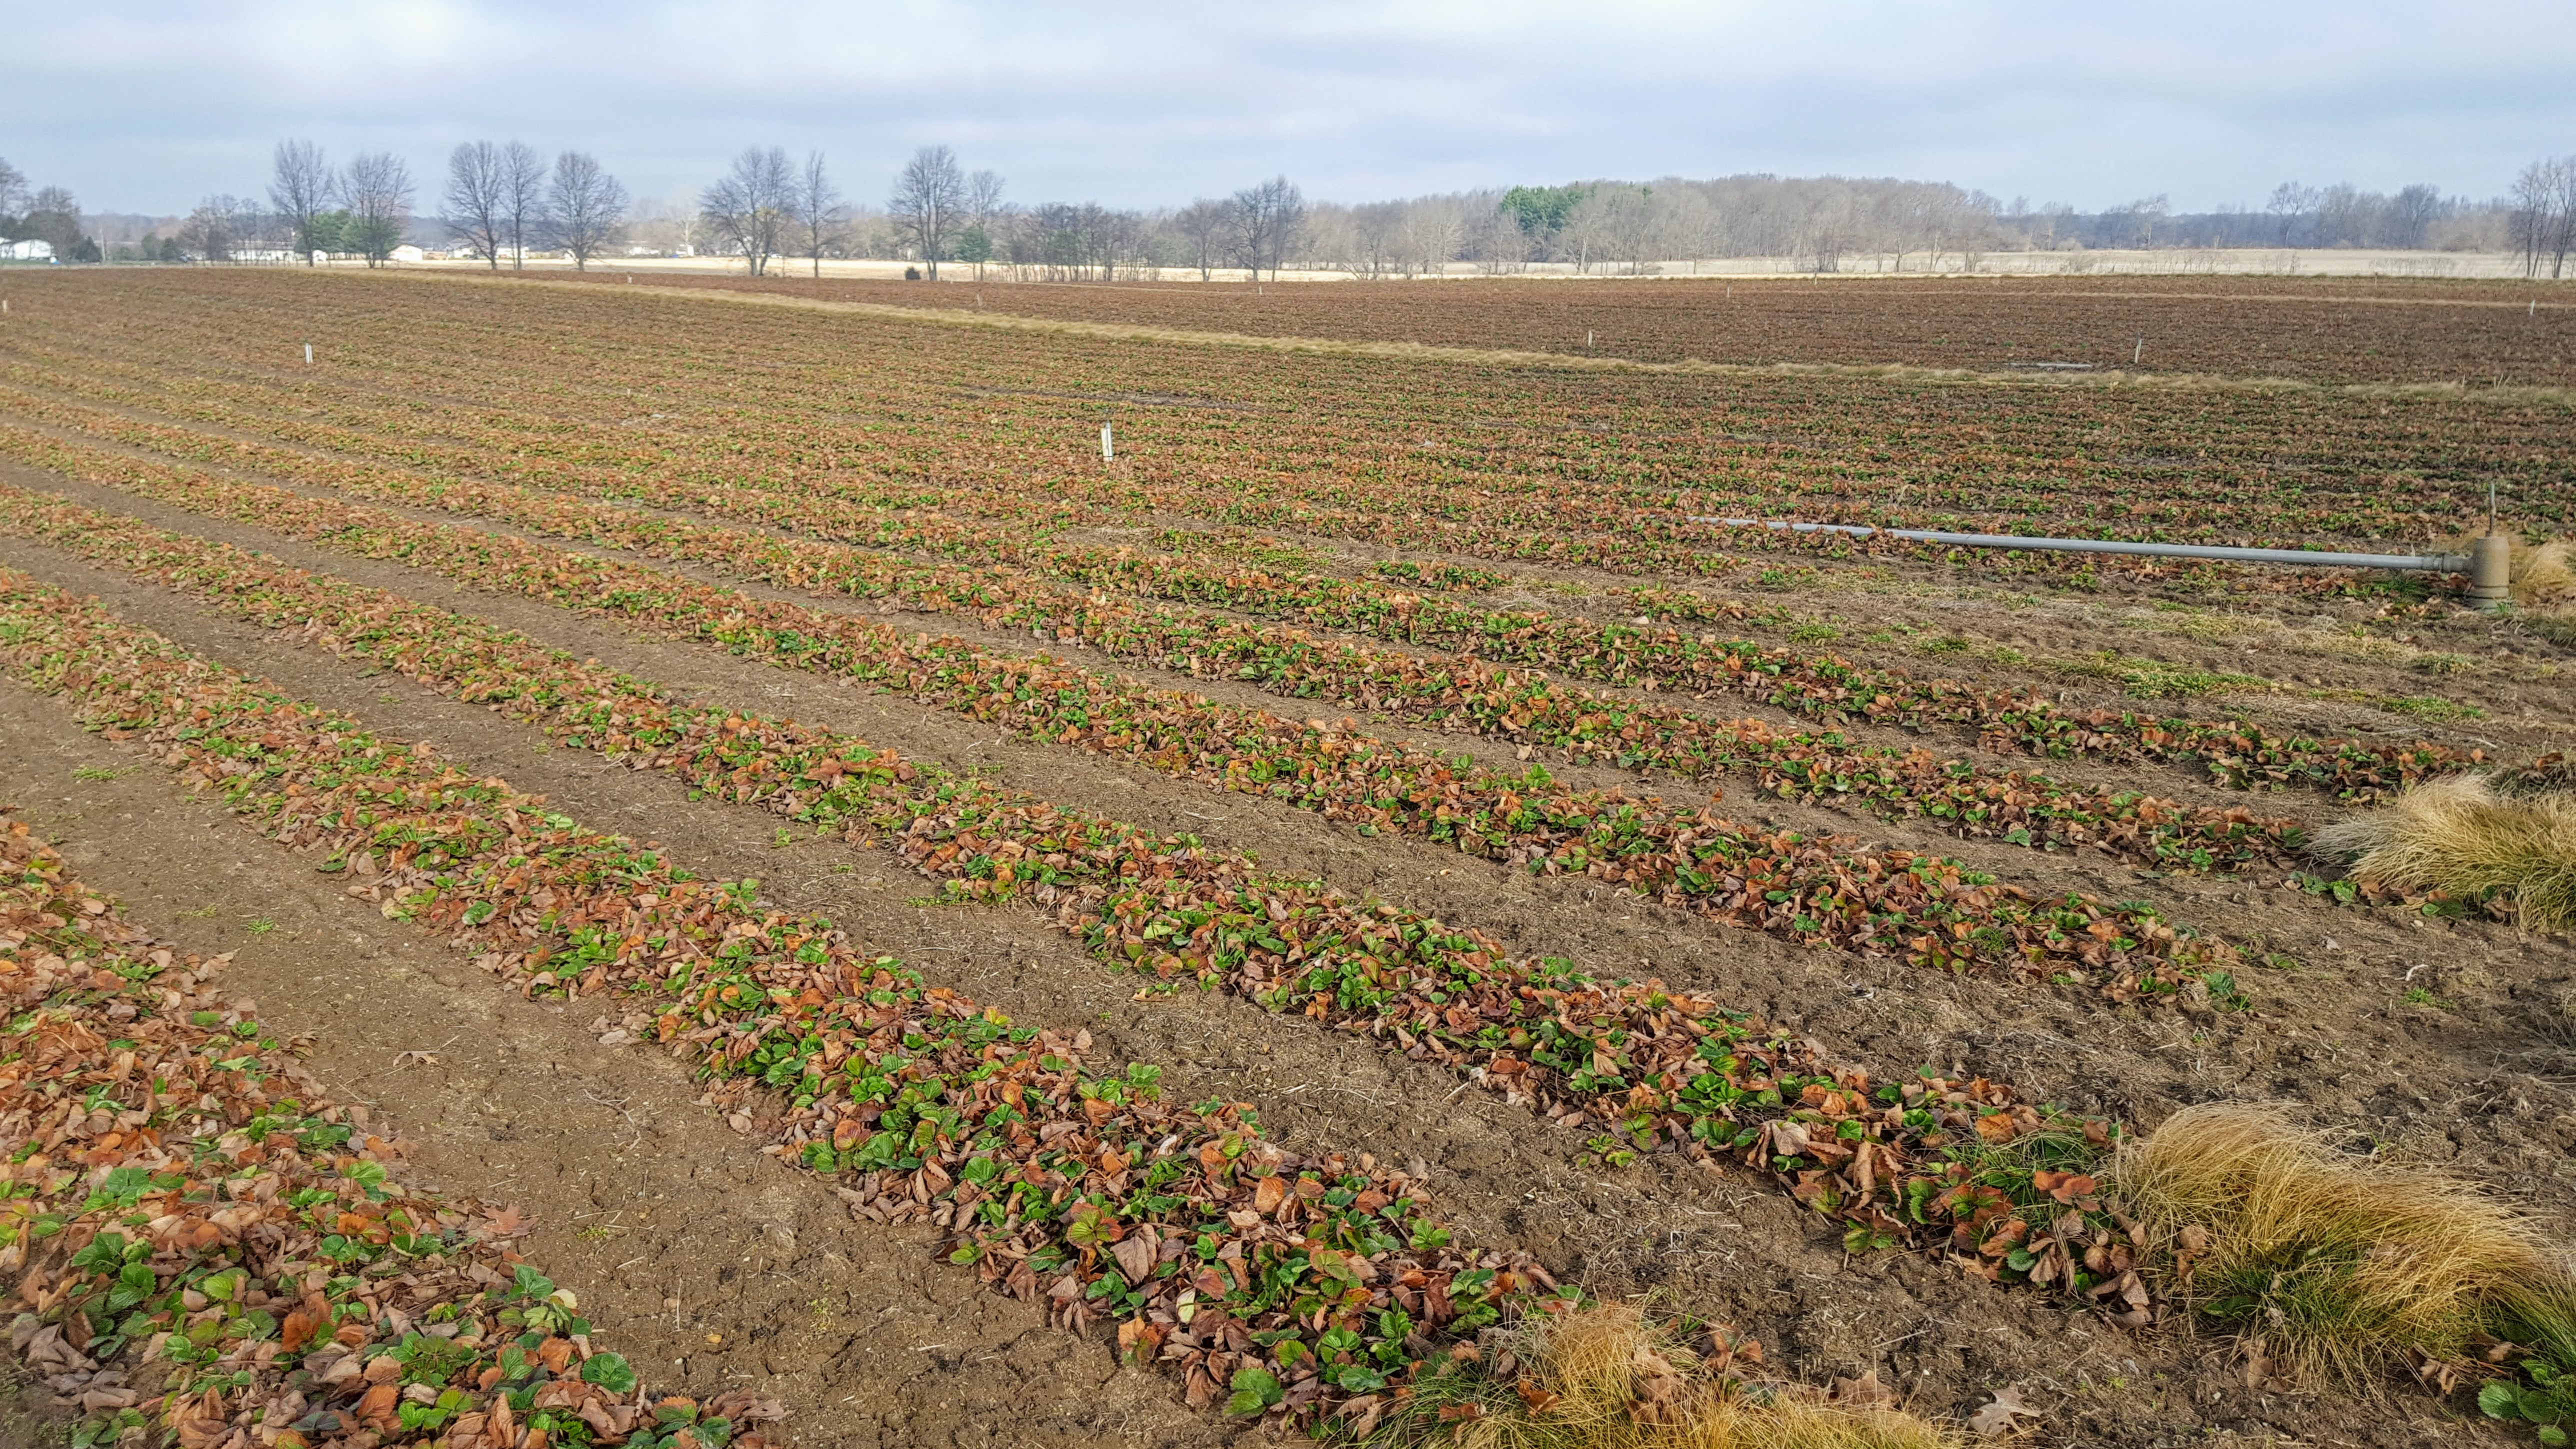 Winter damage to strawberries